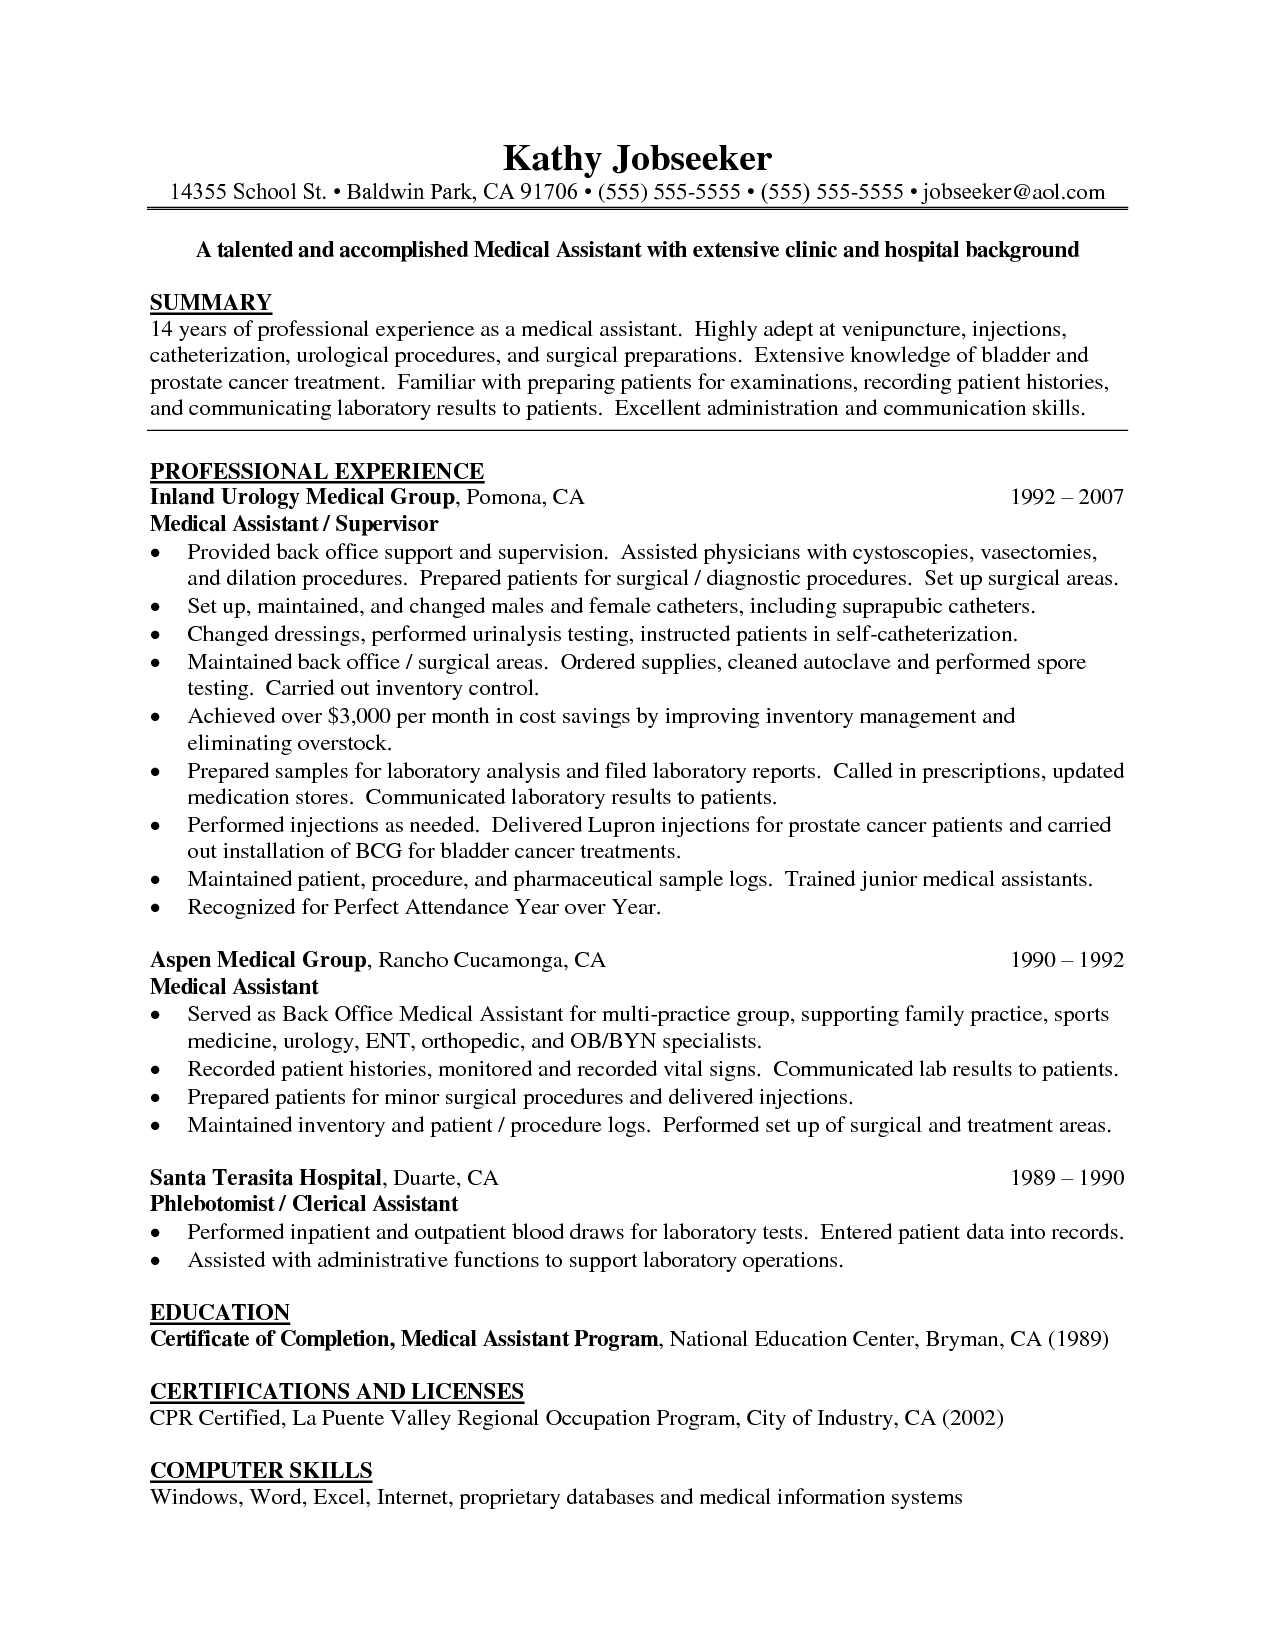 Medical Office Assistant Resume Cover Letter For Medical Doctor Job Assistant Sample Resume